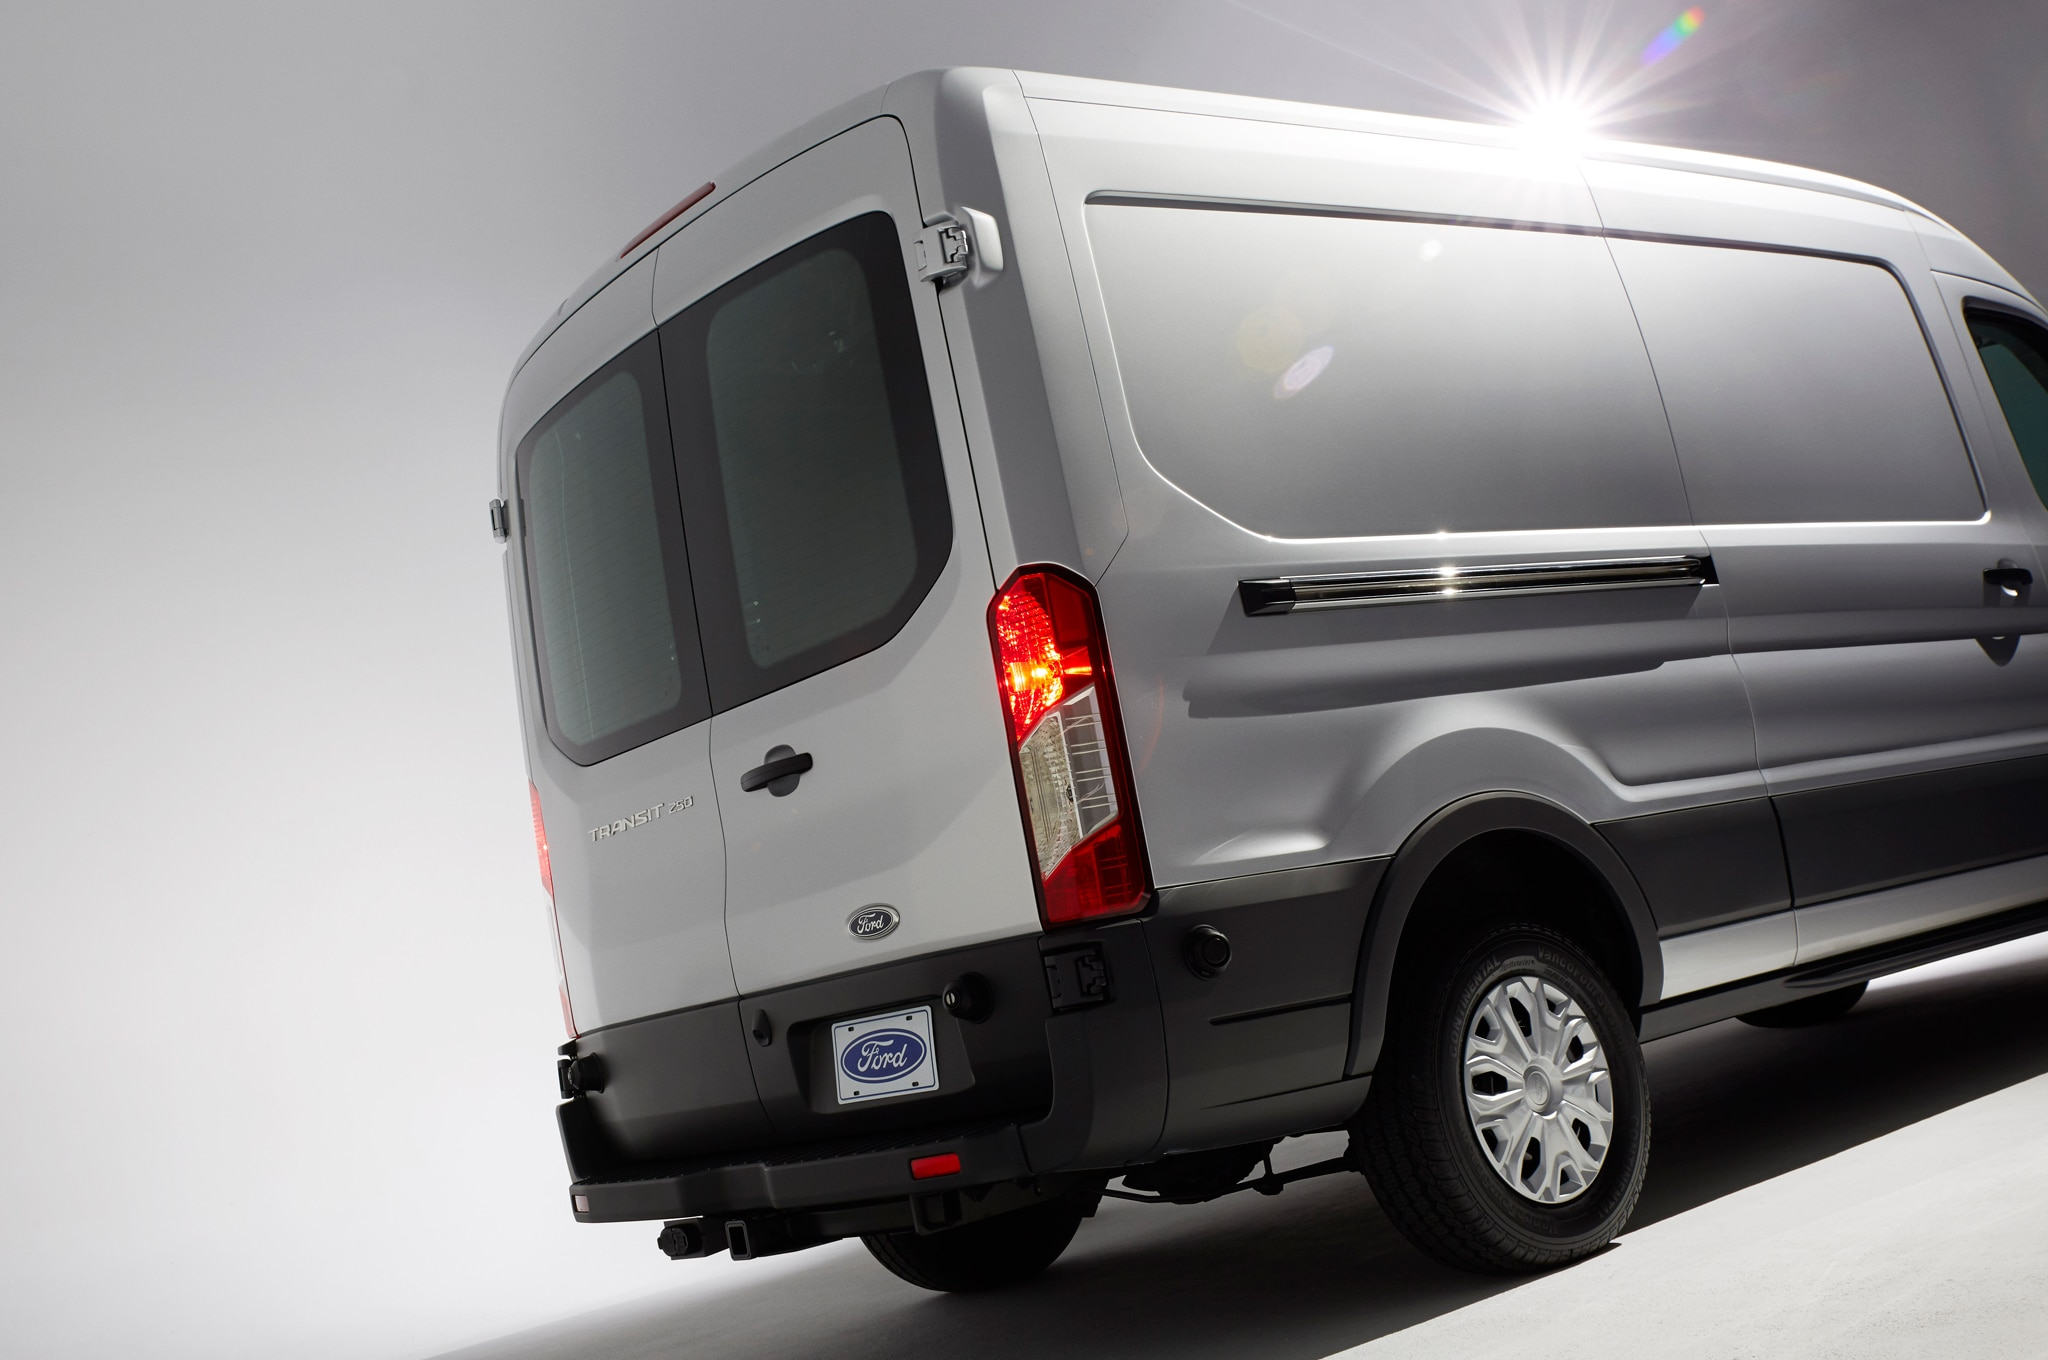 2015 Ford Transit Cargo Van Review - photo#44